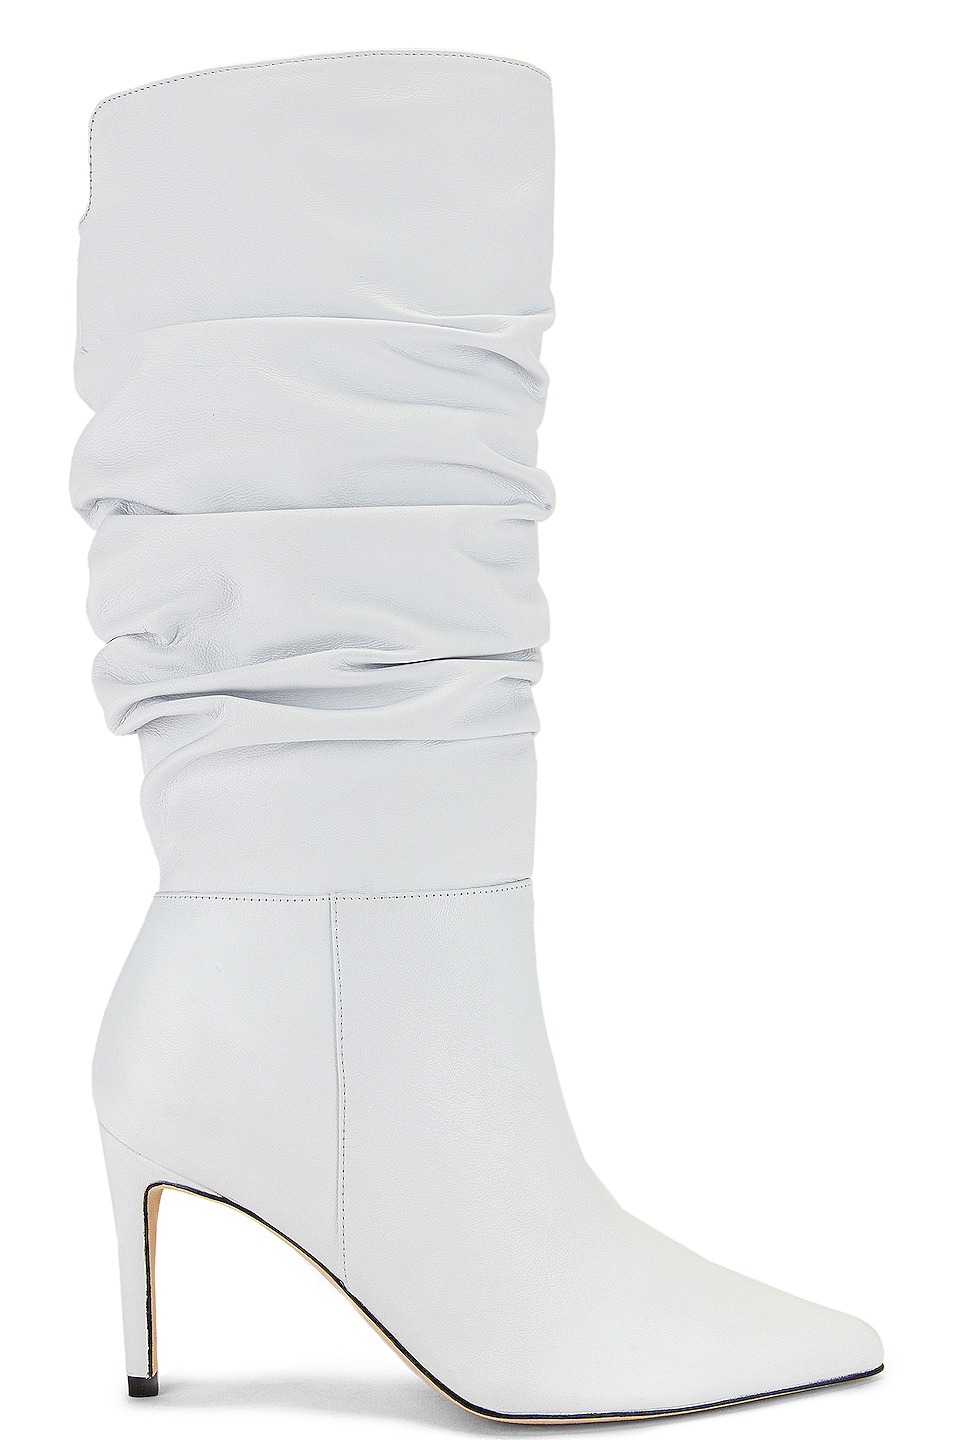 Image 1 of Alexandre Birman Lucy Leather Boots in White